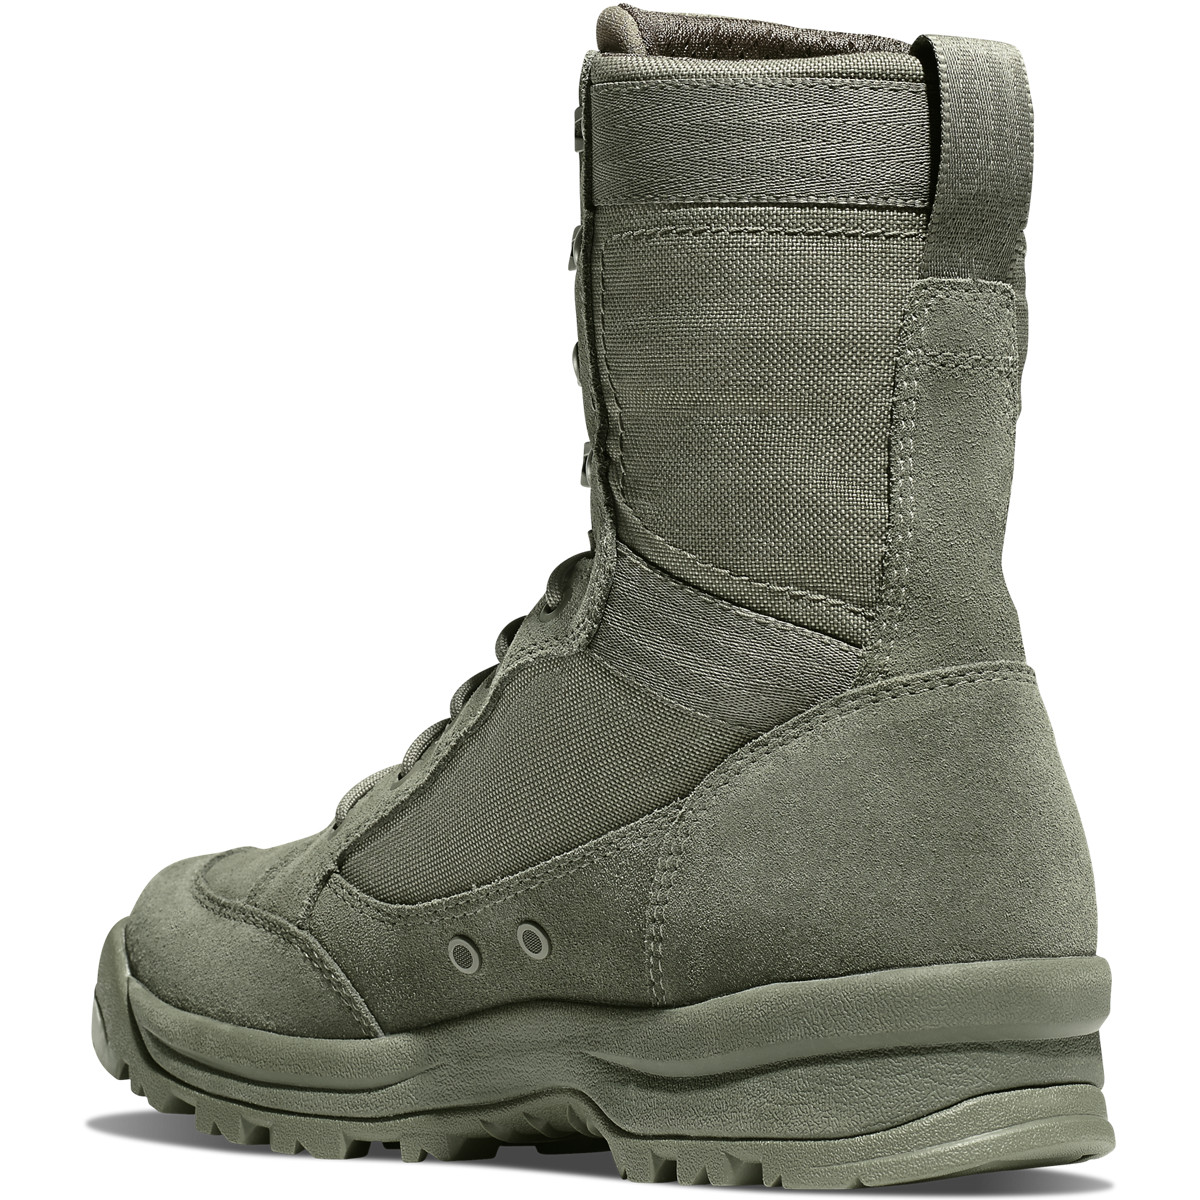 Danner Tanicus 8 Inch Hot Weather Military Boot 55314